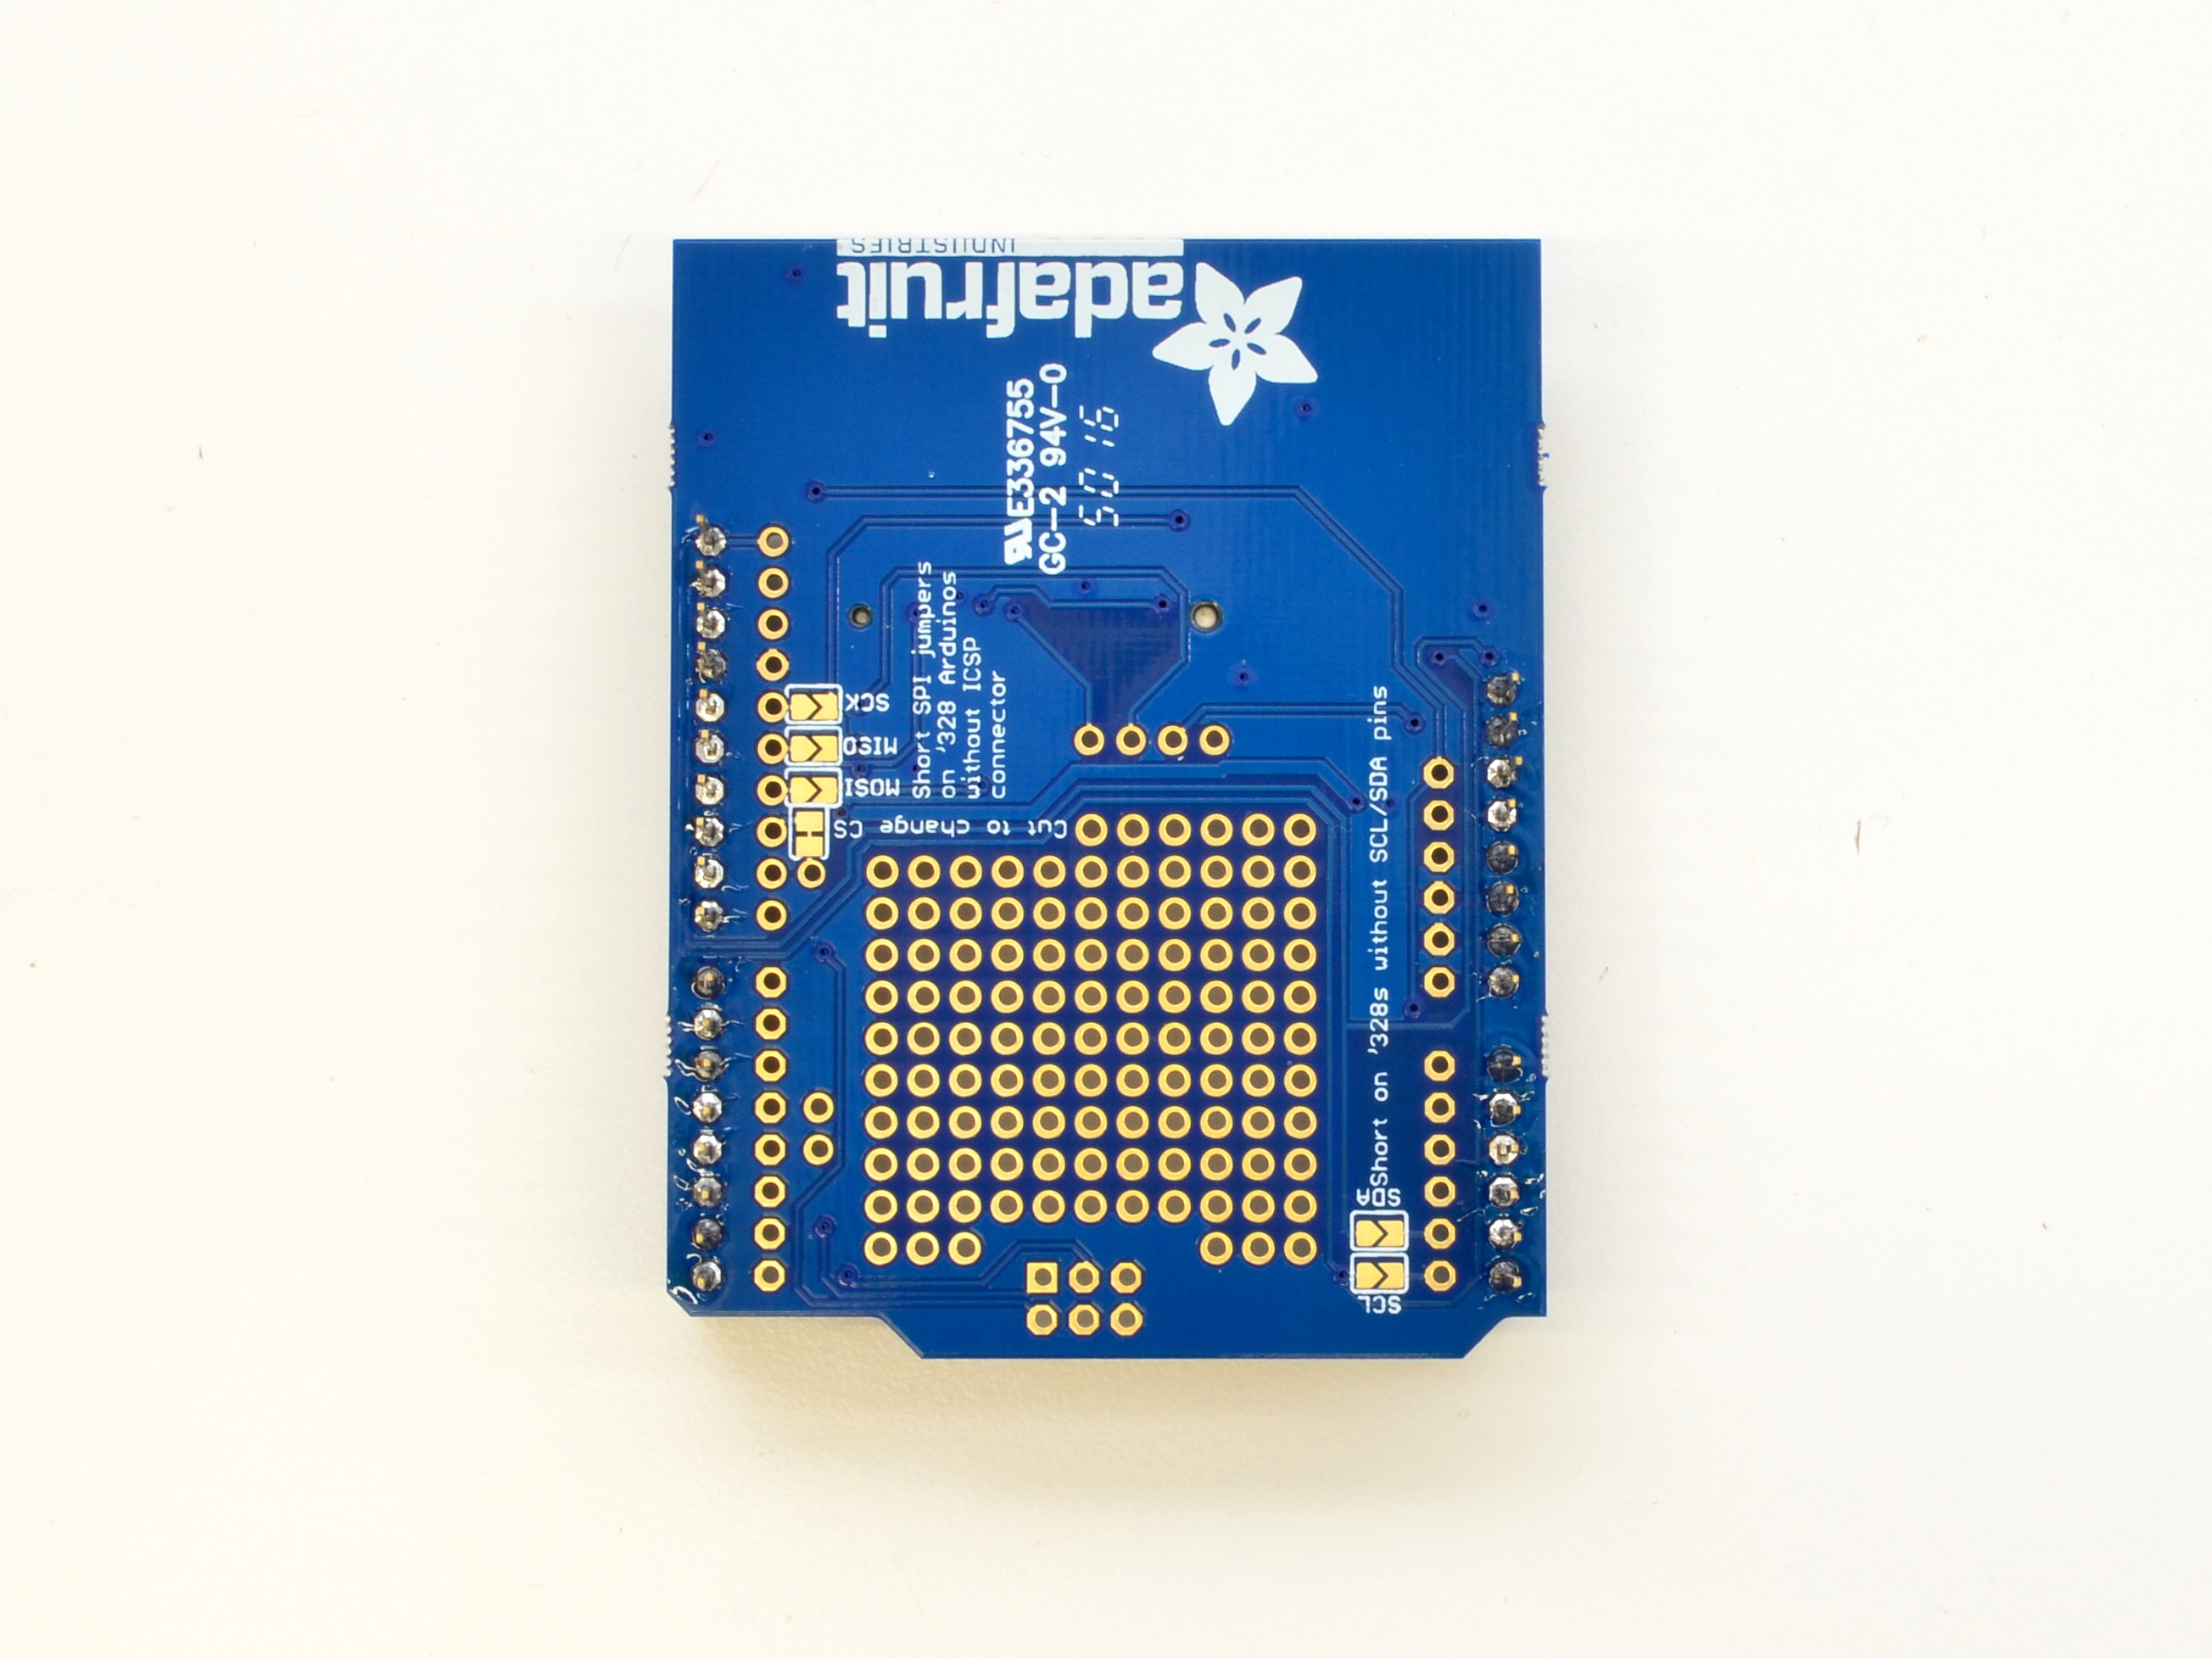 adafruit_products_DSC_3519.jpg